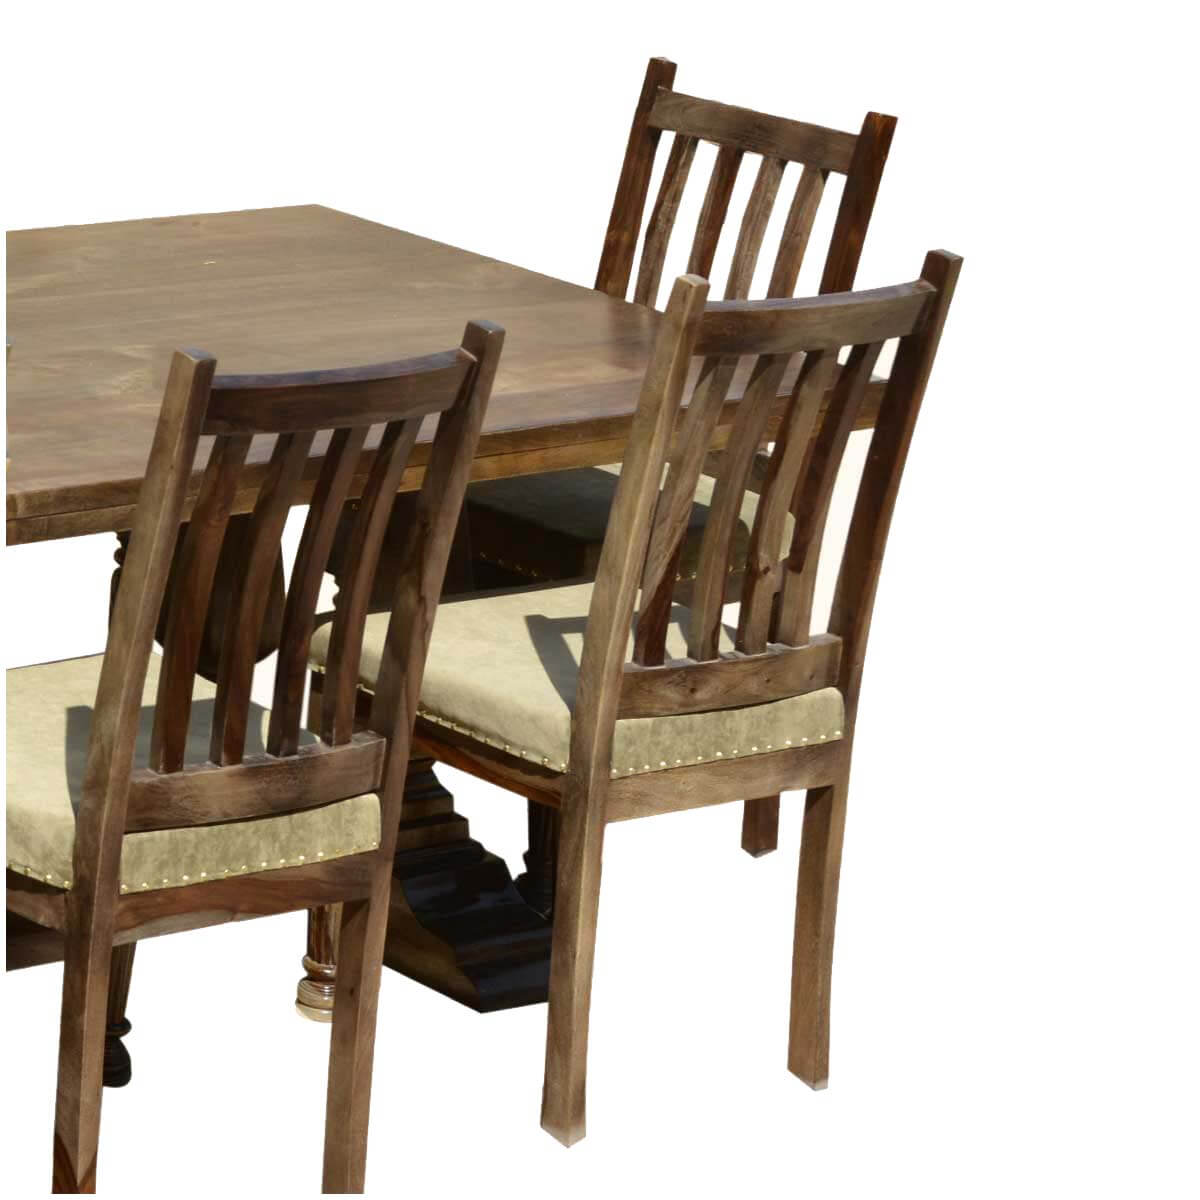 Farmhouse Dining Table And Chairs Farmhouse Solid Wood Trestle Rustic Dining Table